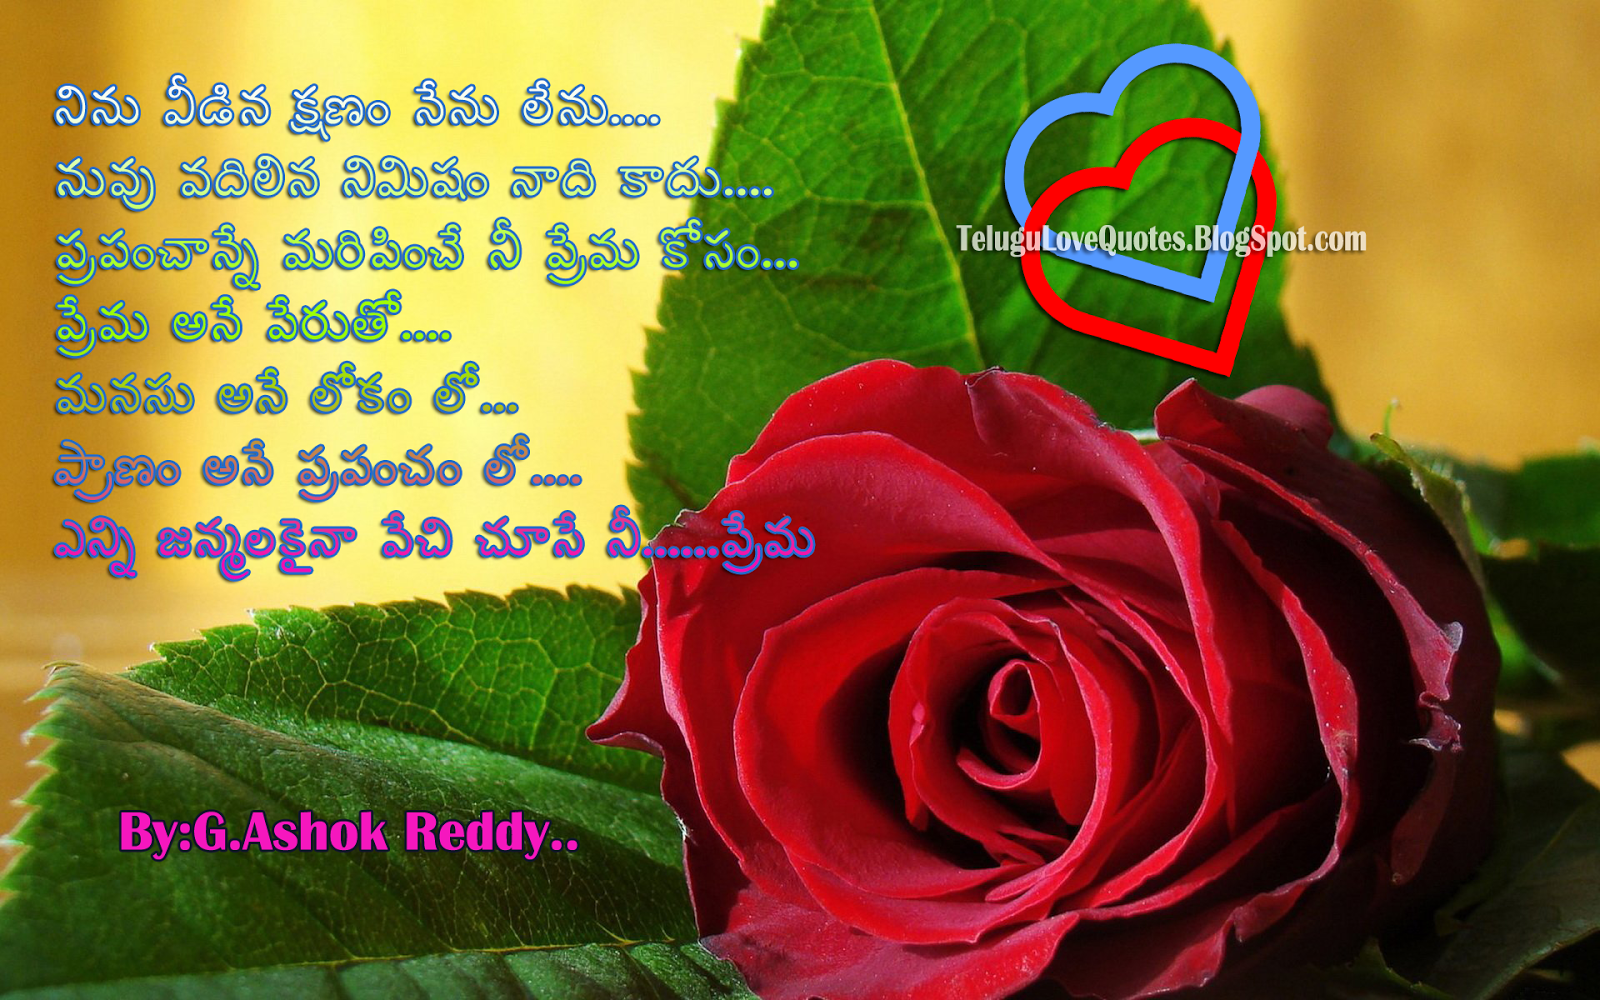 Love Quotes For Him On Greeting Cards Telugu Love Quote With Image